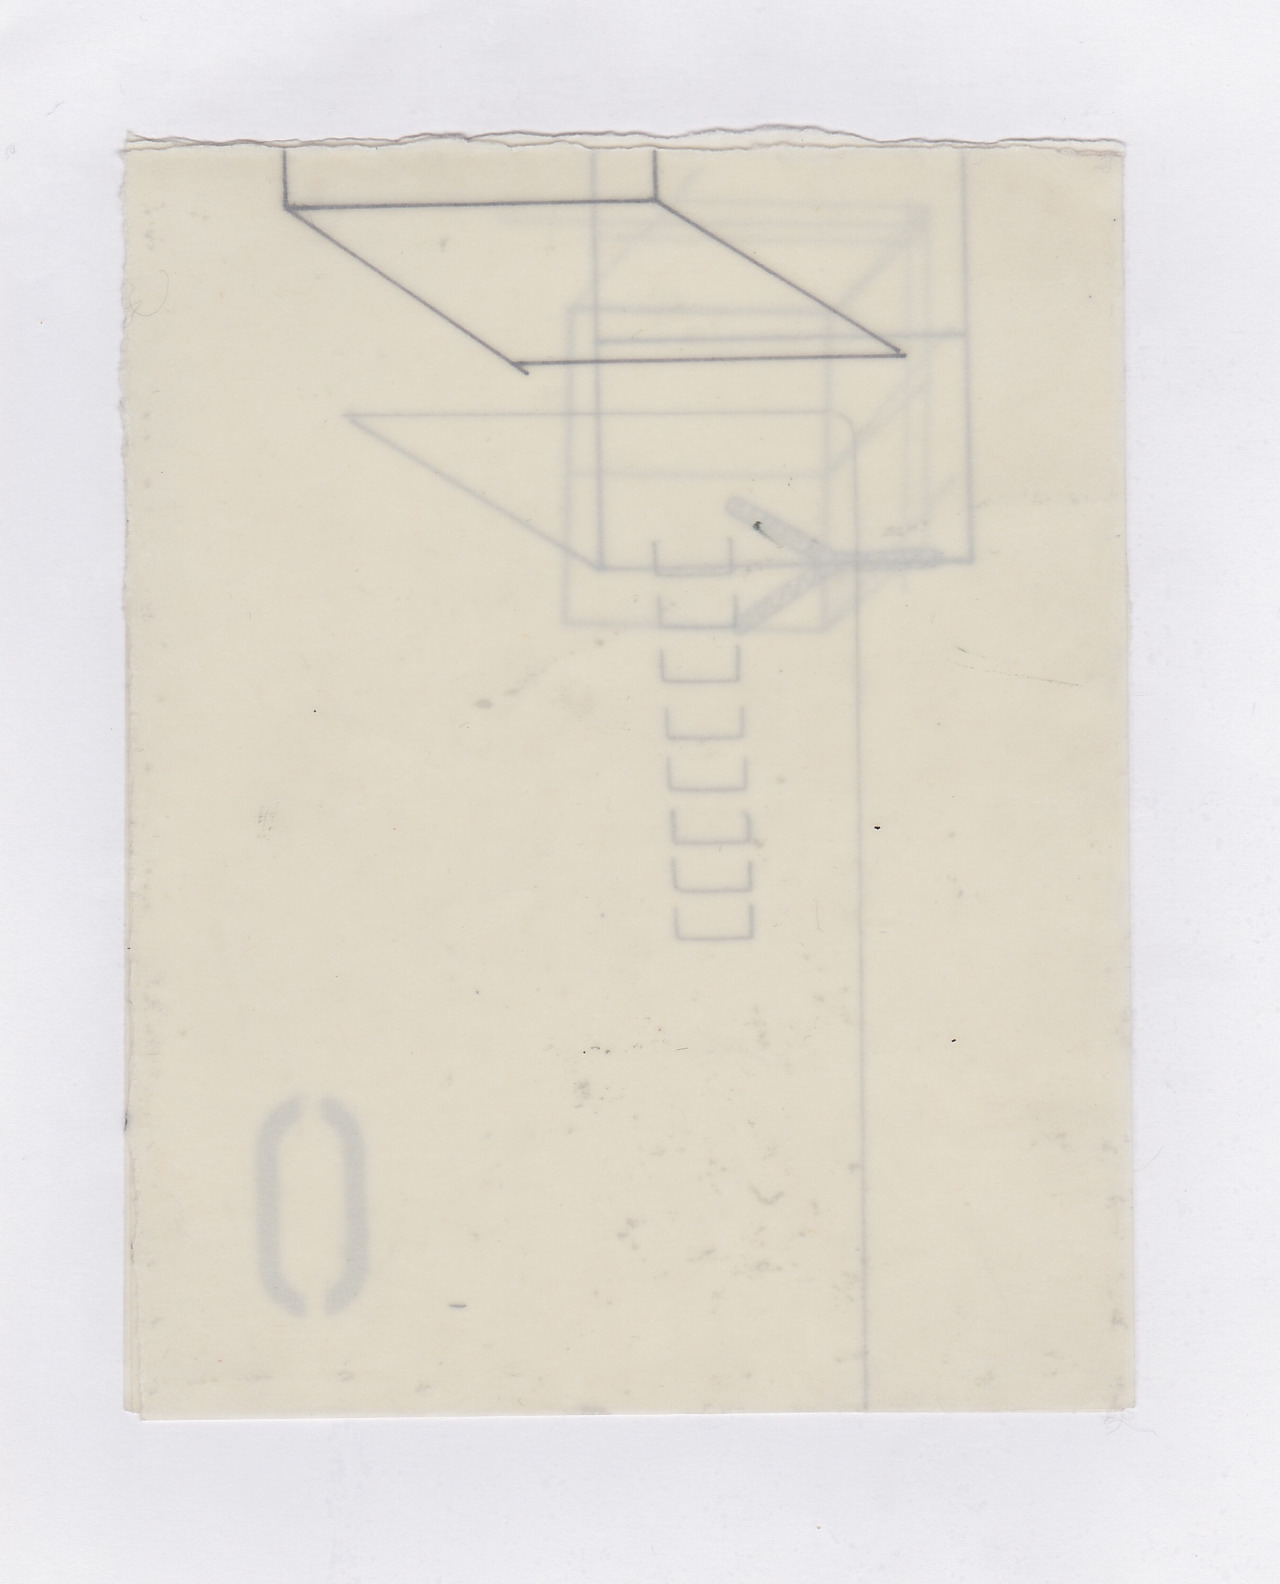 Untitled (the city, observations 11)  Pencil on layered(x3) oiled fabriano paper.  140mm x 180mm  December 2013.